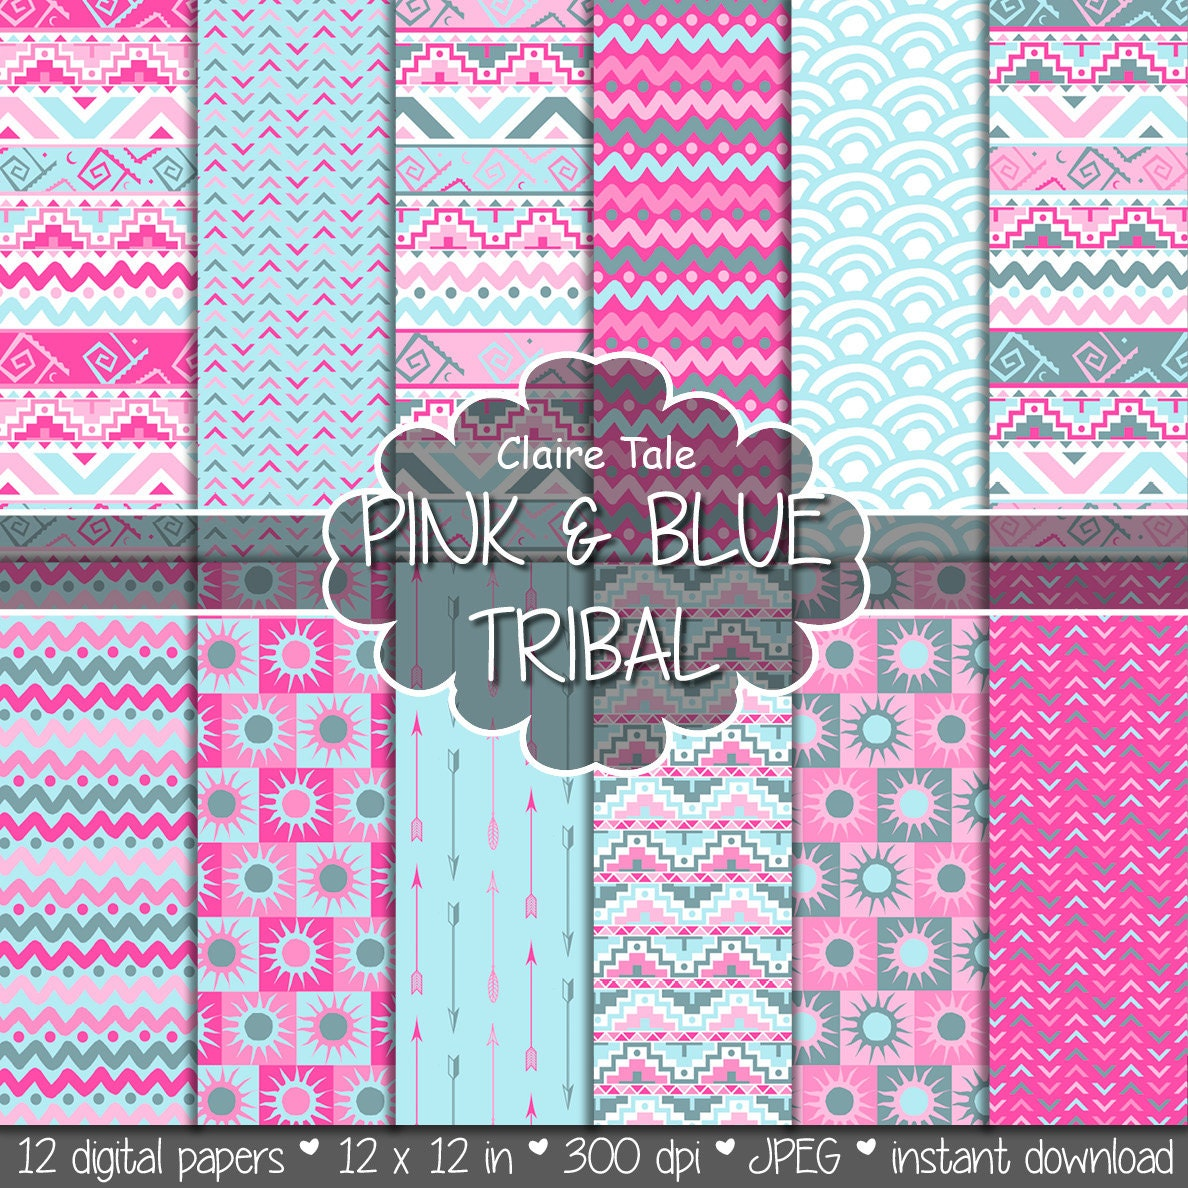 Blue Tribal Wallpapers: Tribal Digital Paper: PINK & BLUE TRIBAL With Tribal